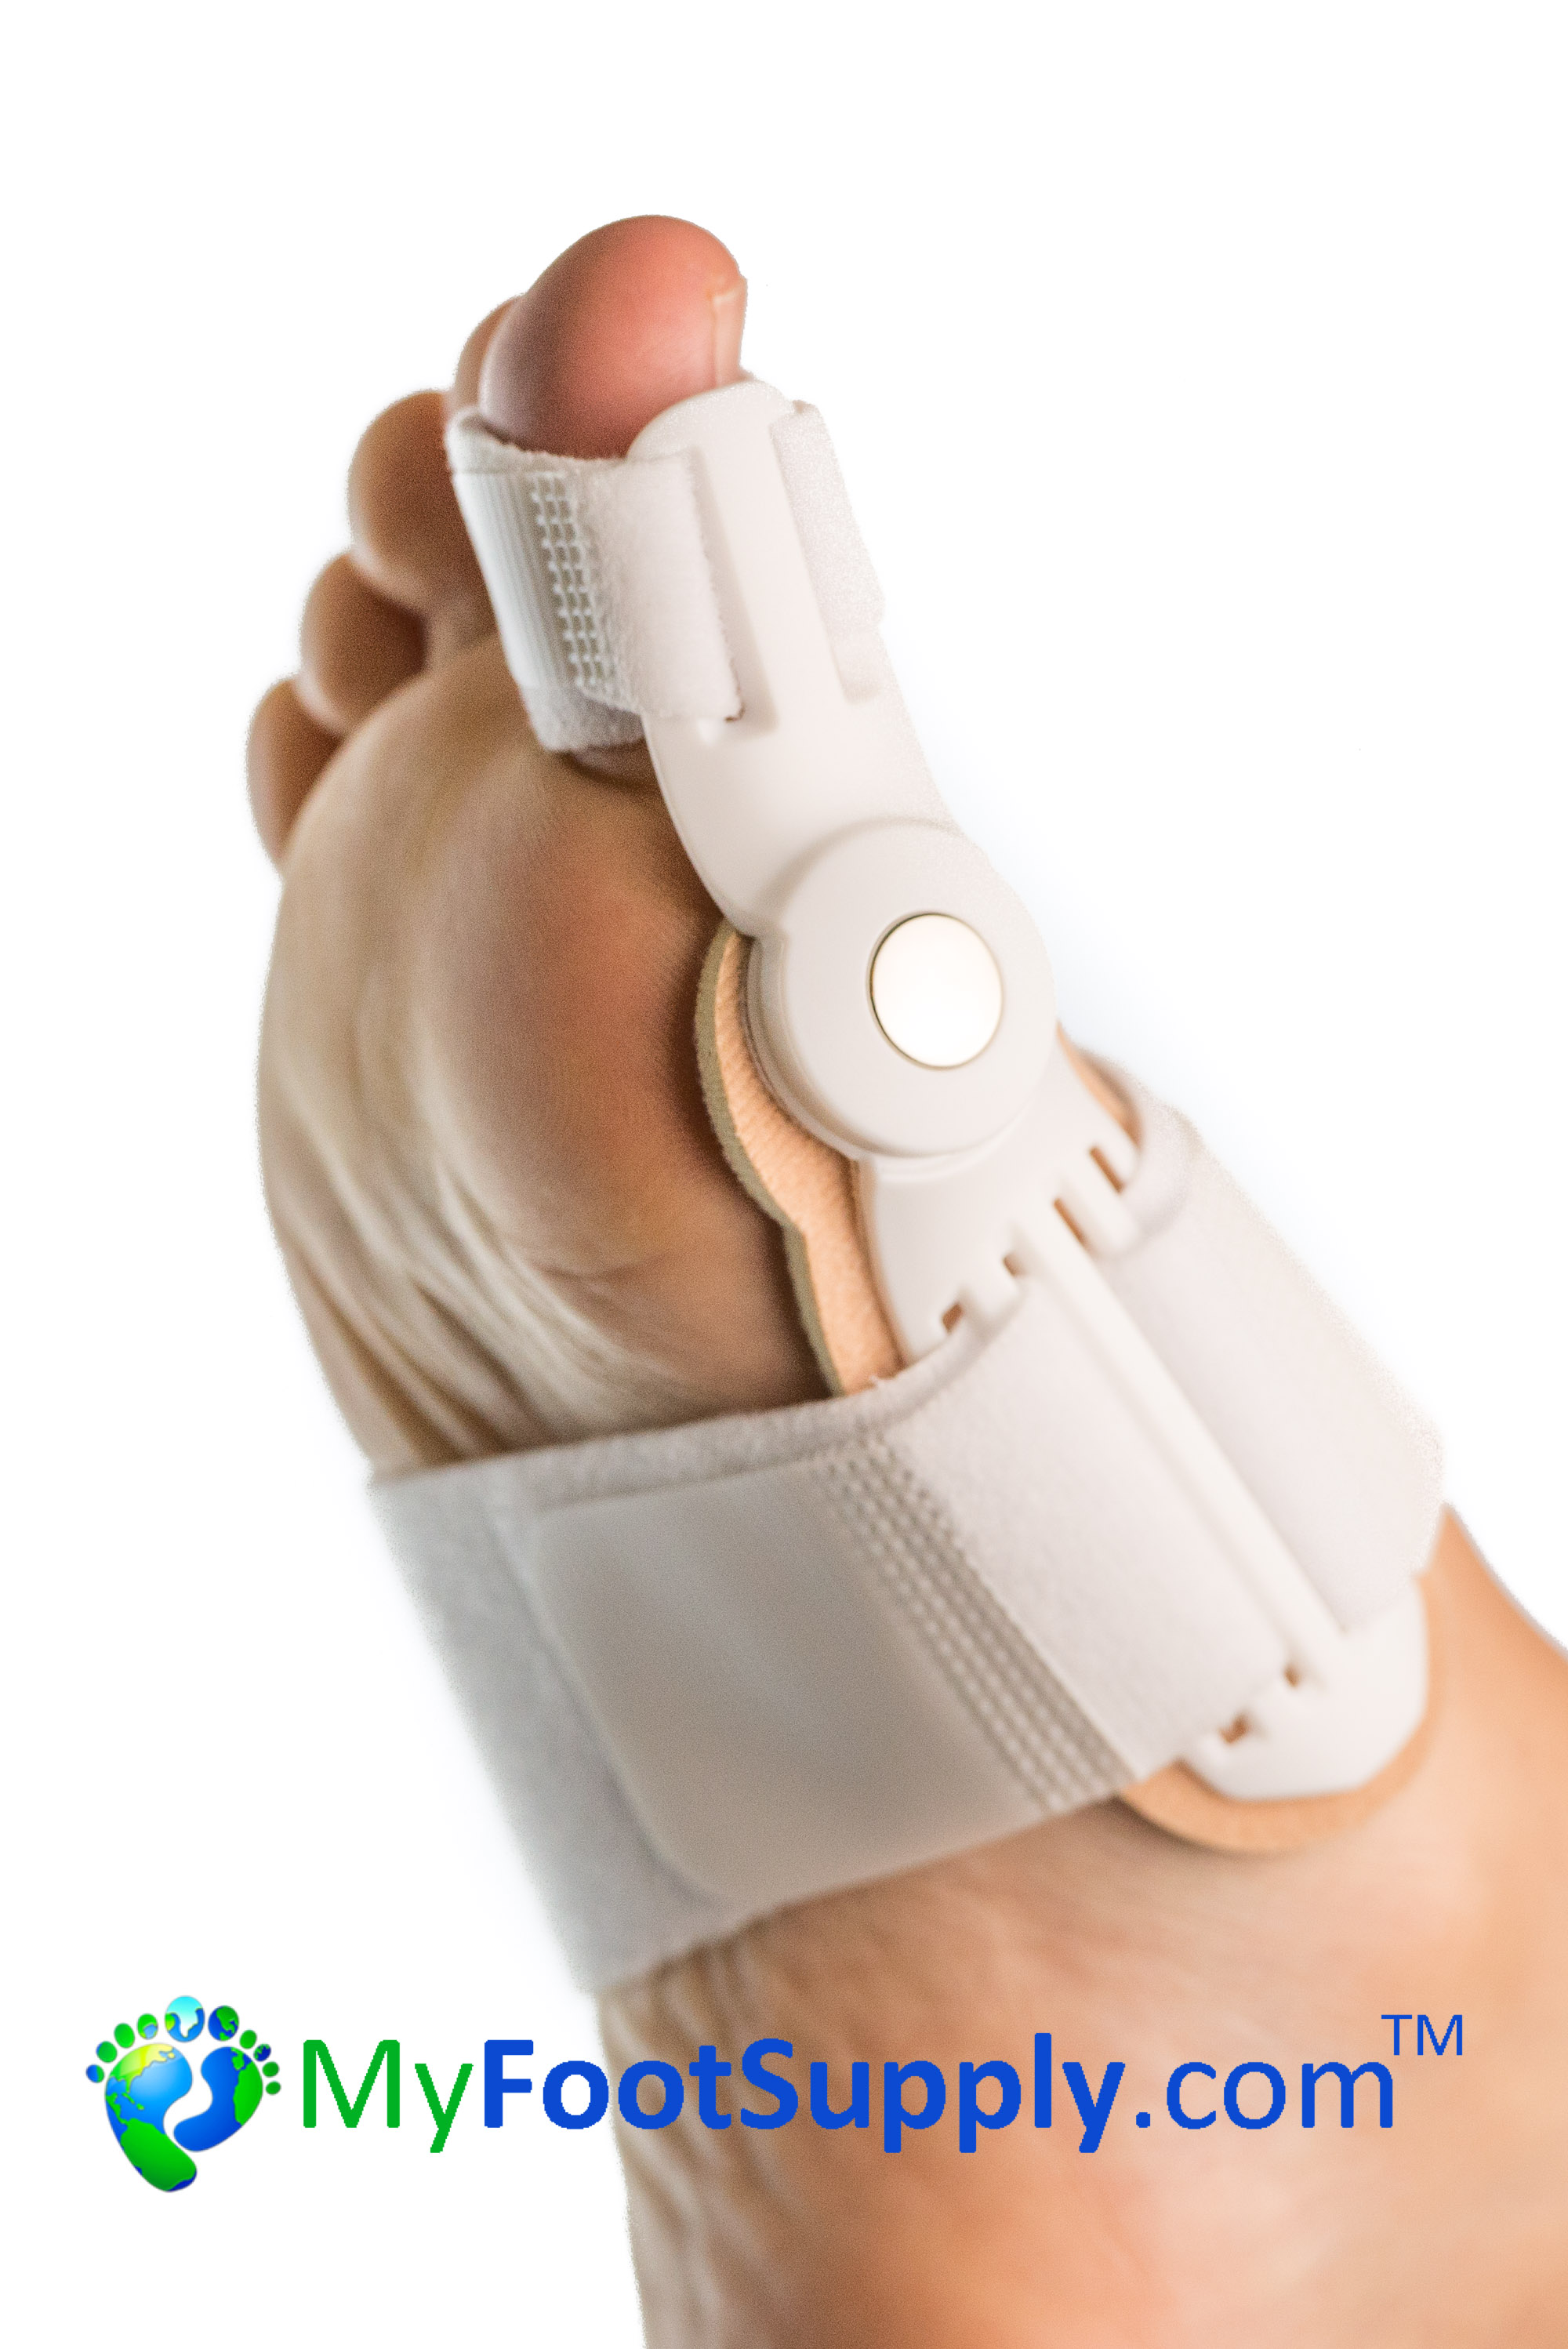 Bunion Devices